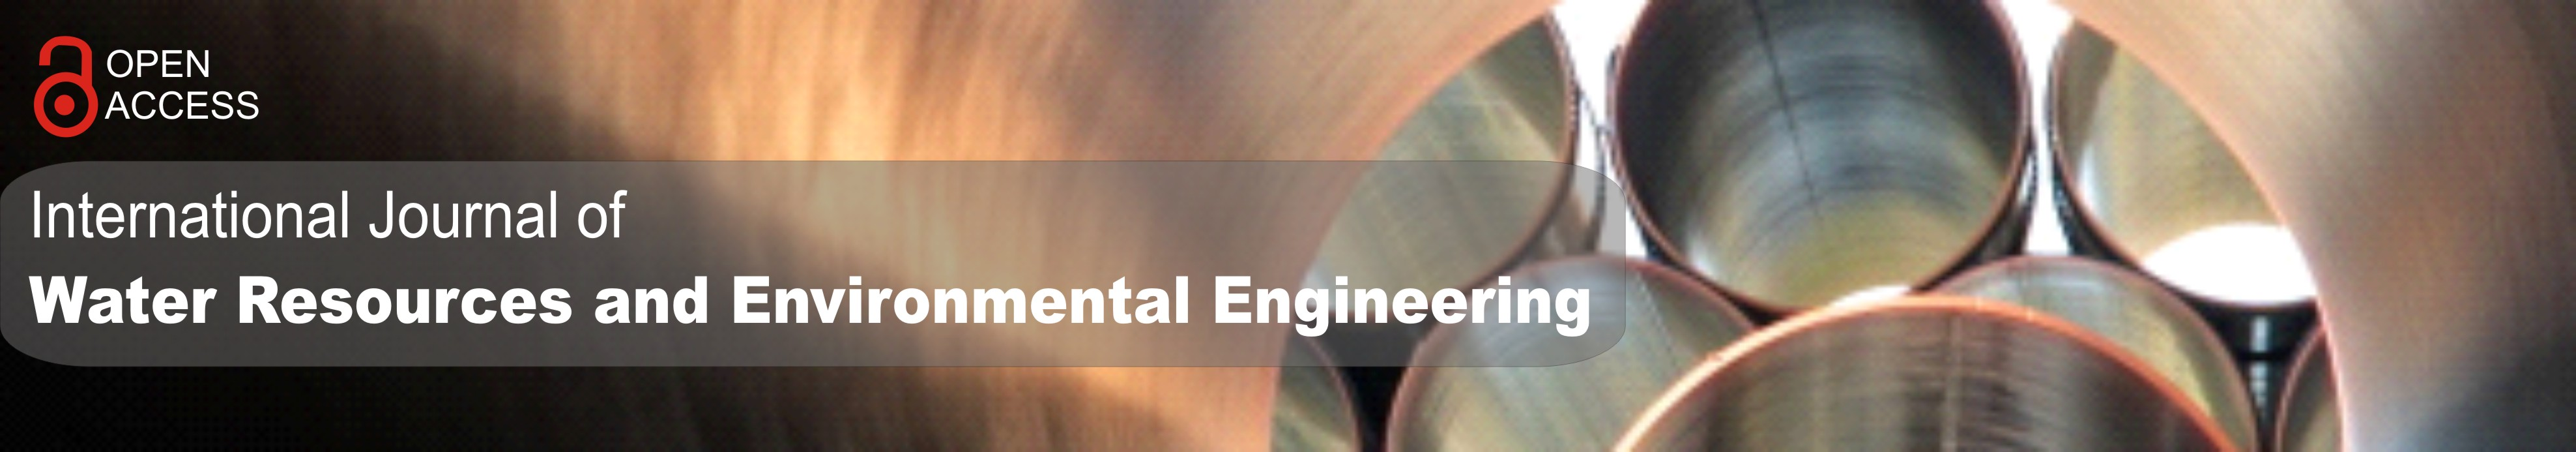 International Journal of Water Resources and Environmental Engineering